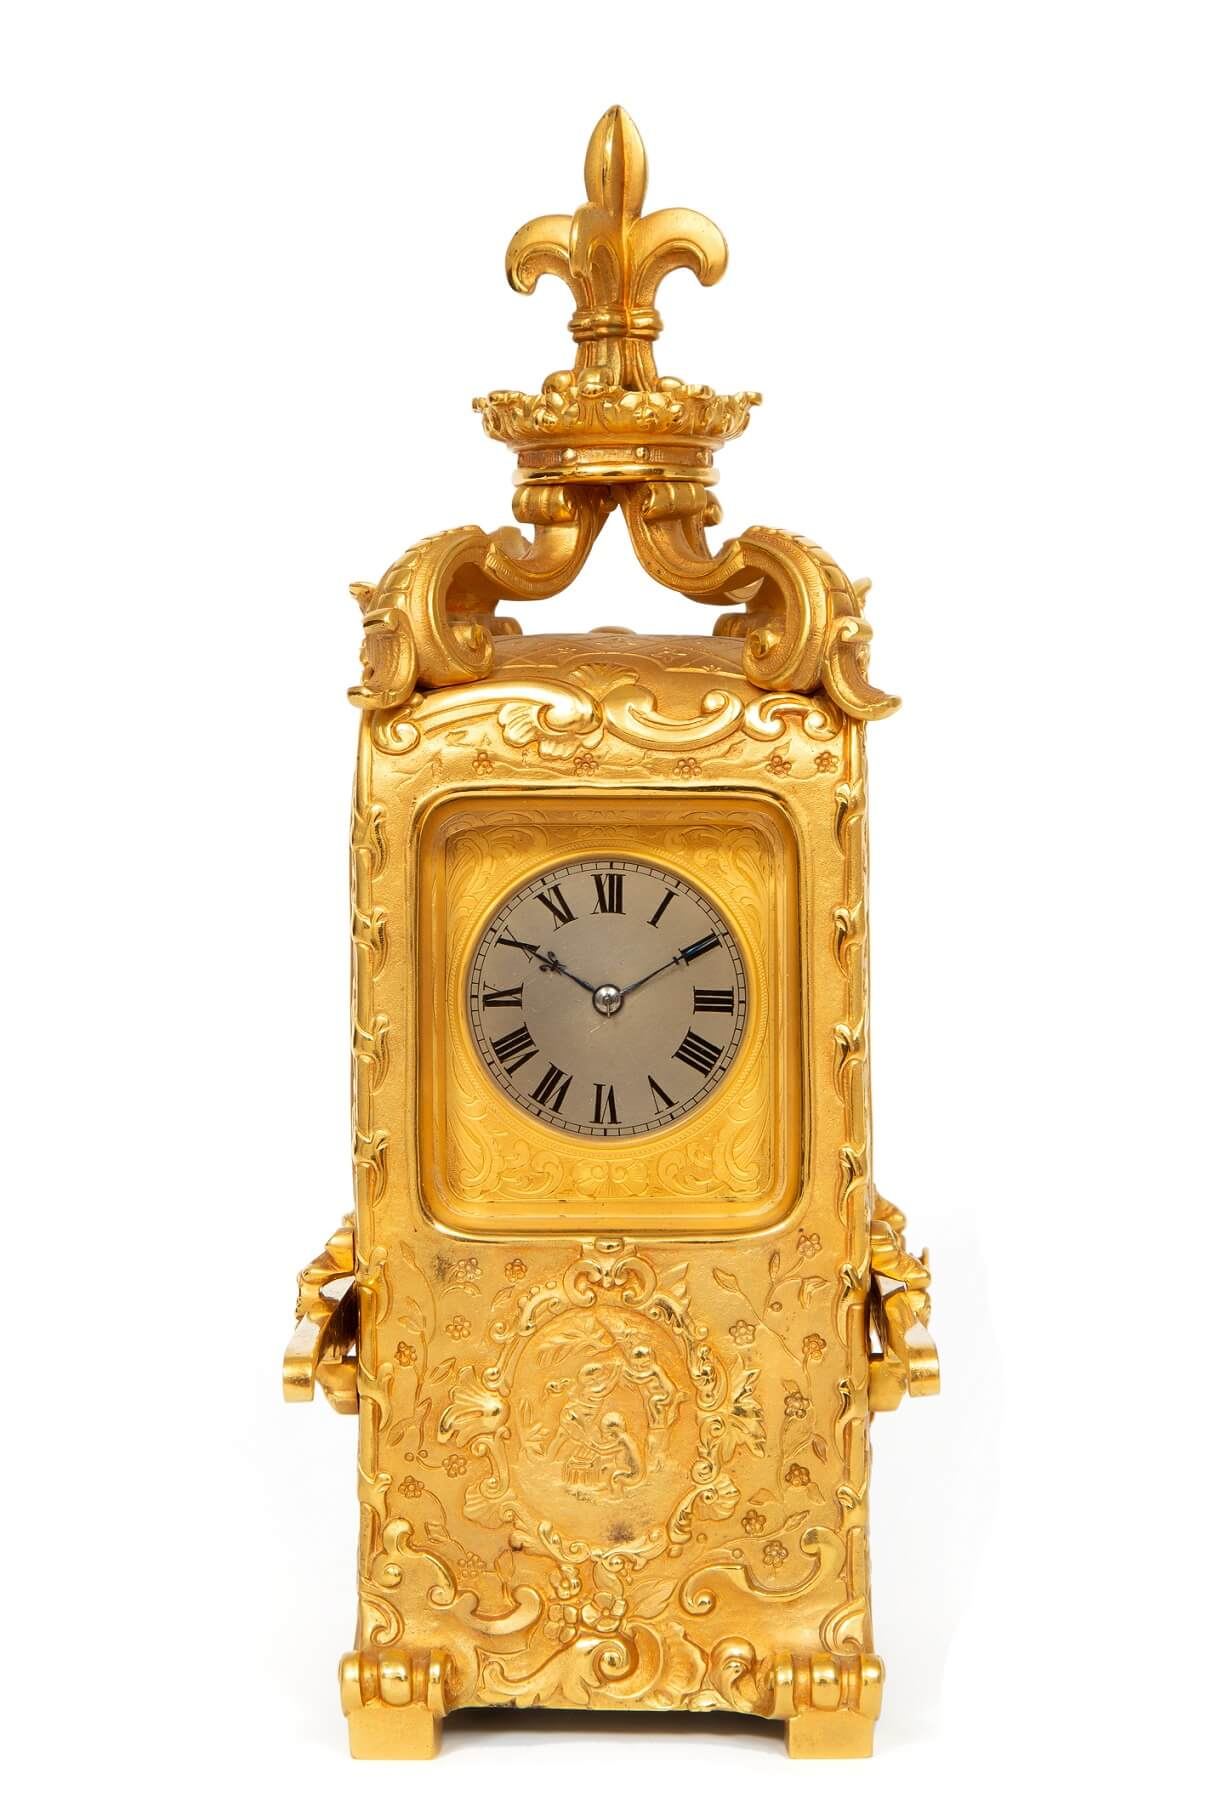 French-rococo-gilt-brass-sedan-carriage-antique-clock-striking-1